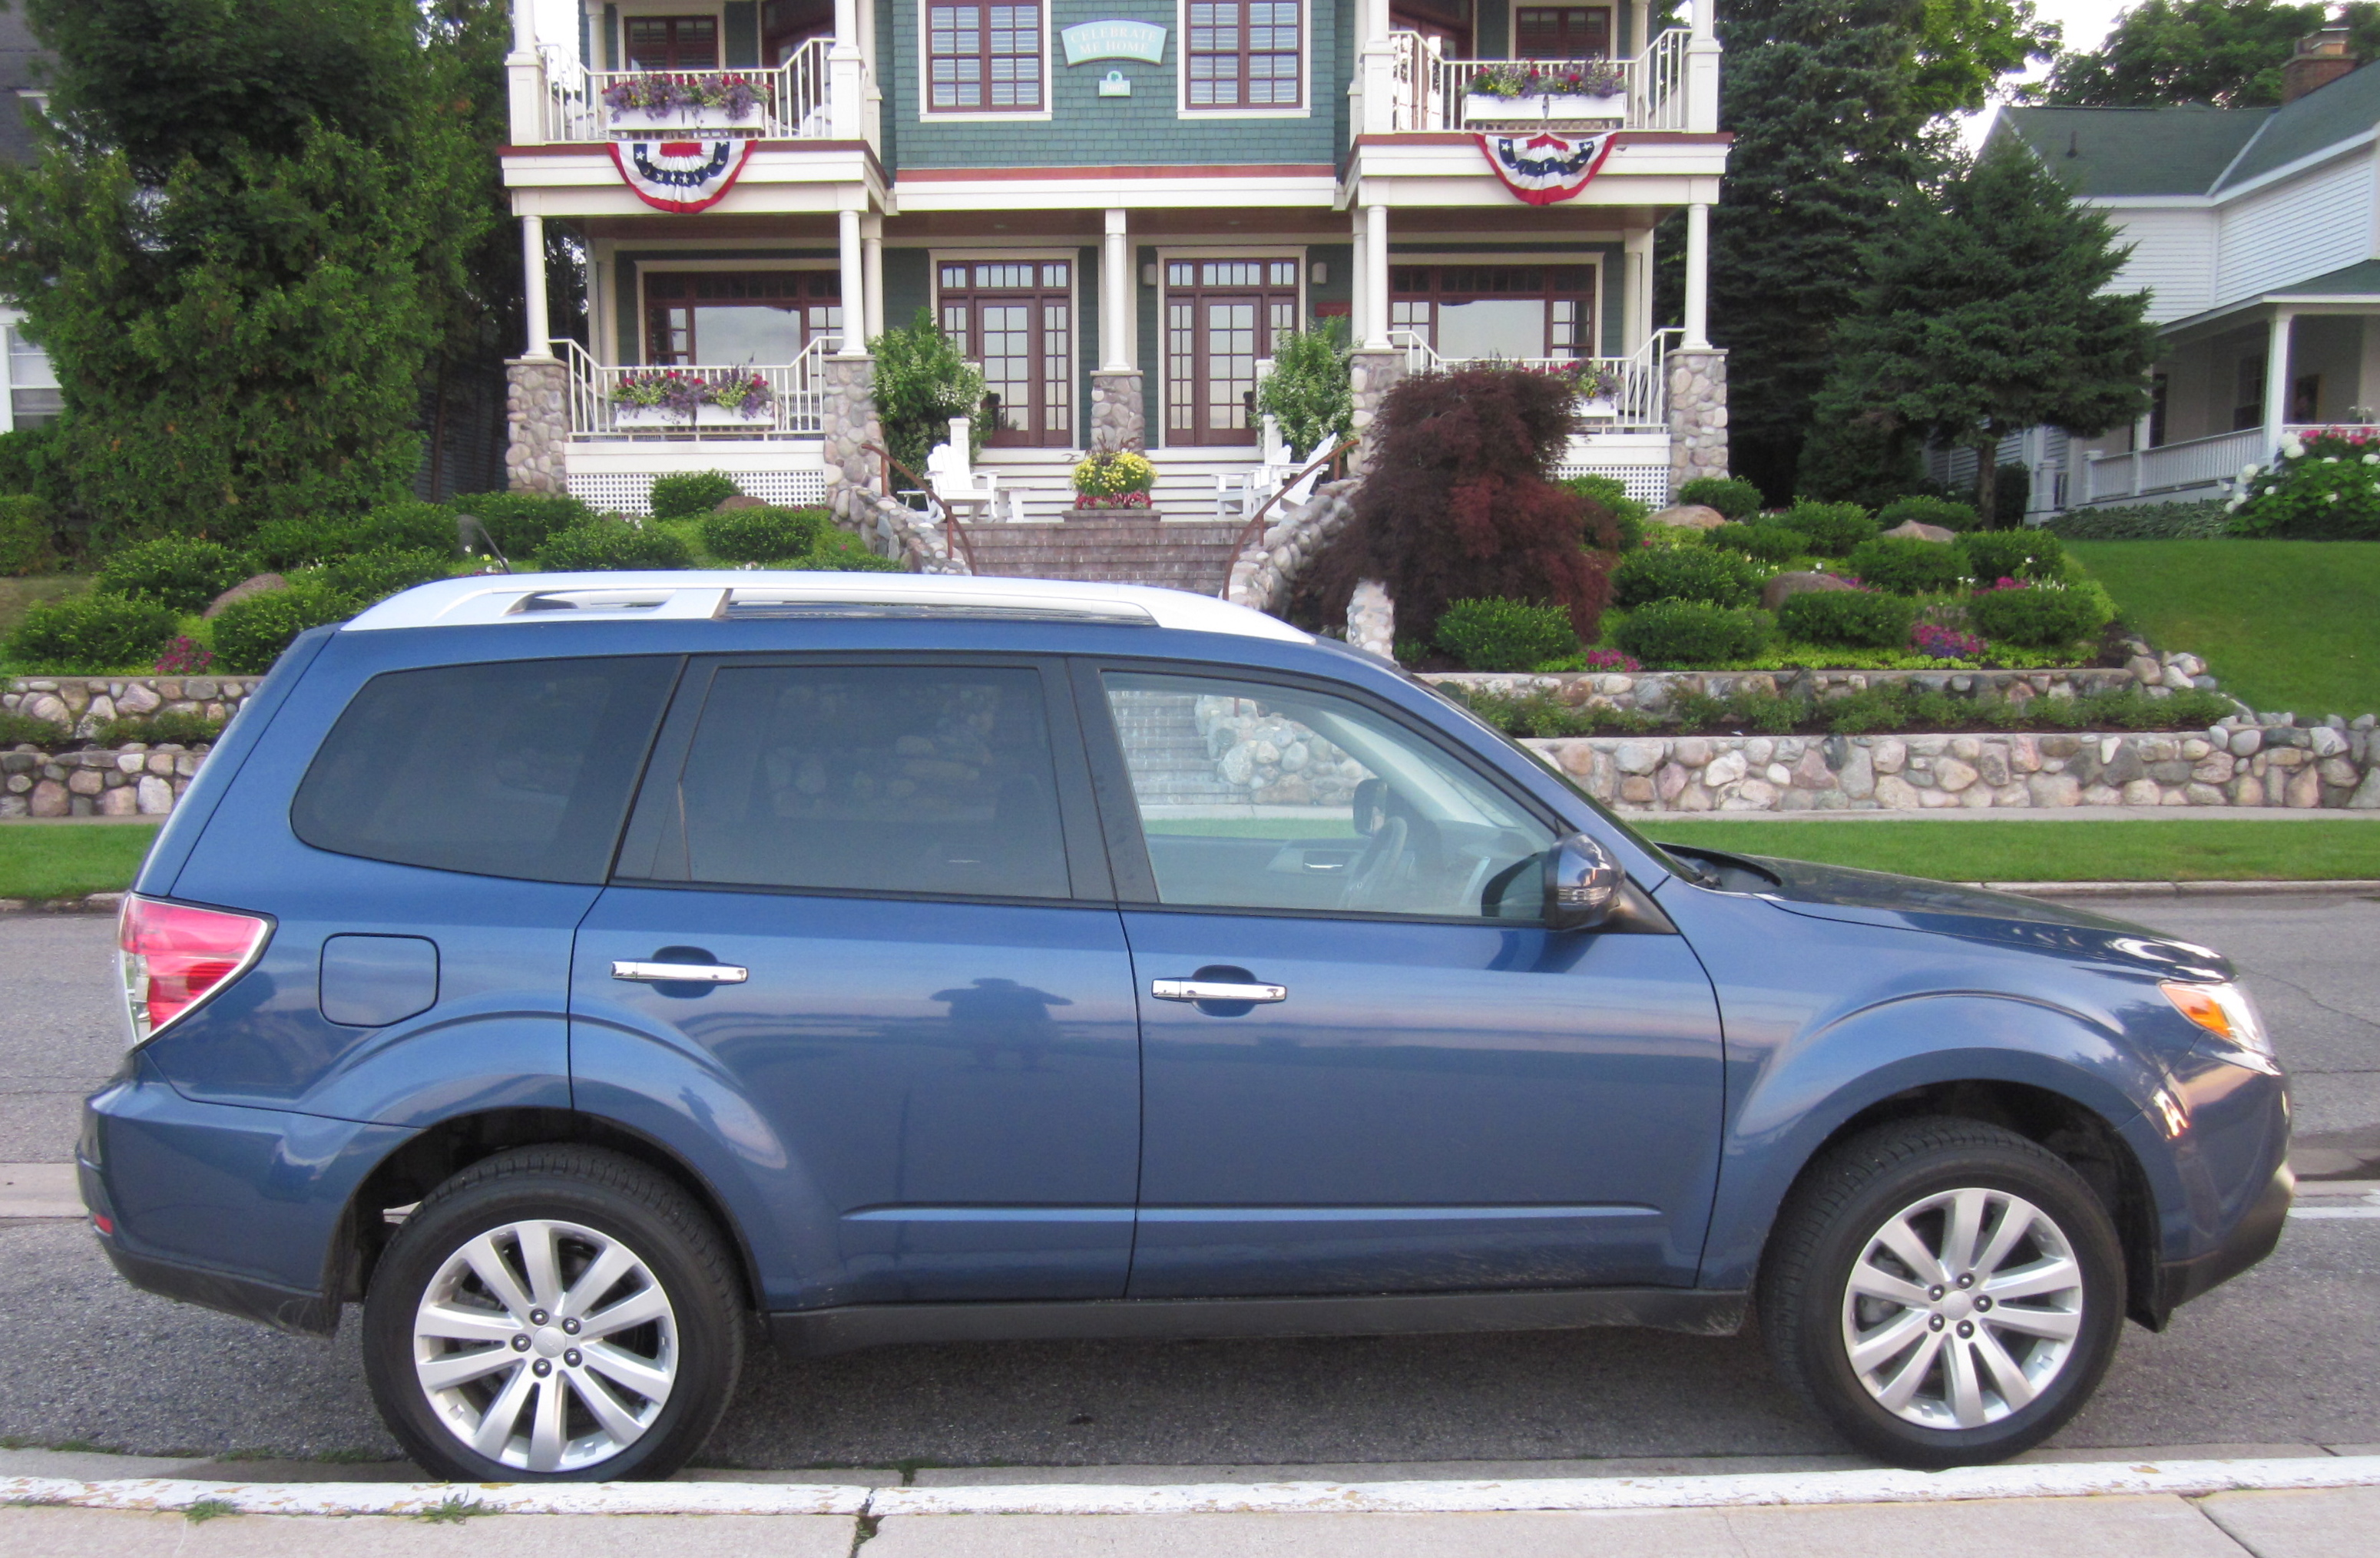 003842 2011 subaru forester 2 5x touring road test and review.5 lg - 2011 Subaru Forester 2 5x Limited